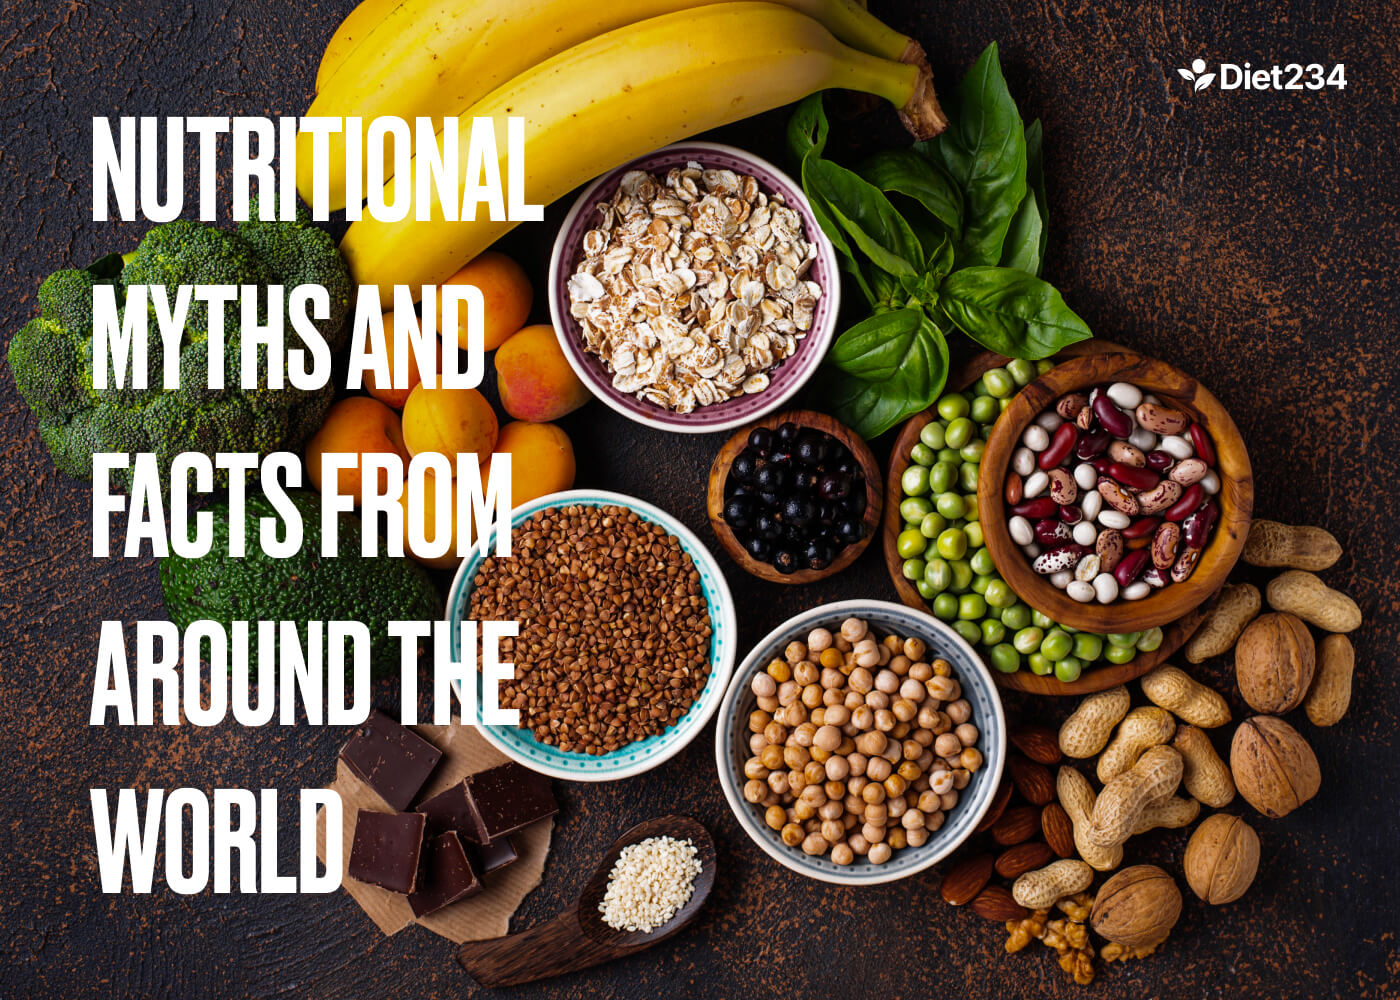 Nutritional Myths and Facts